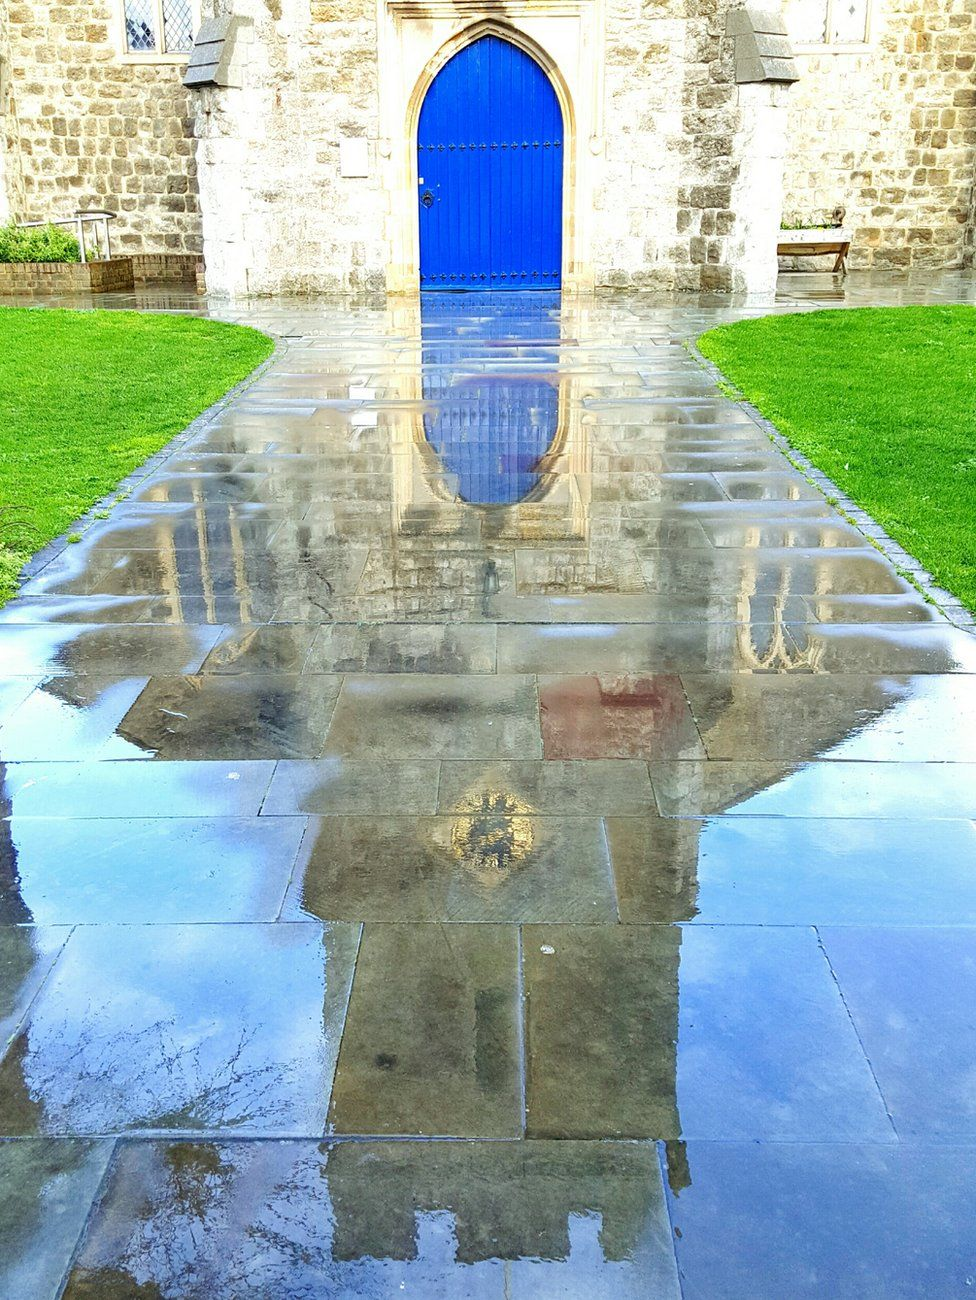 Reflection of a church door on a wet path